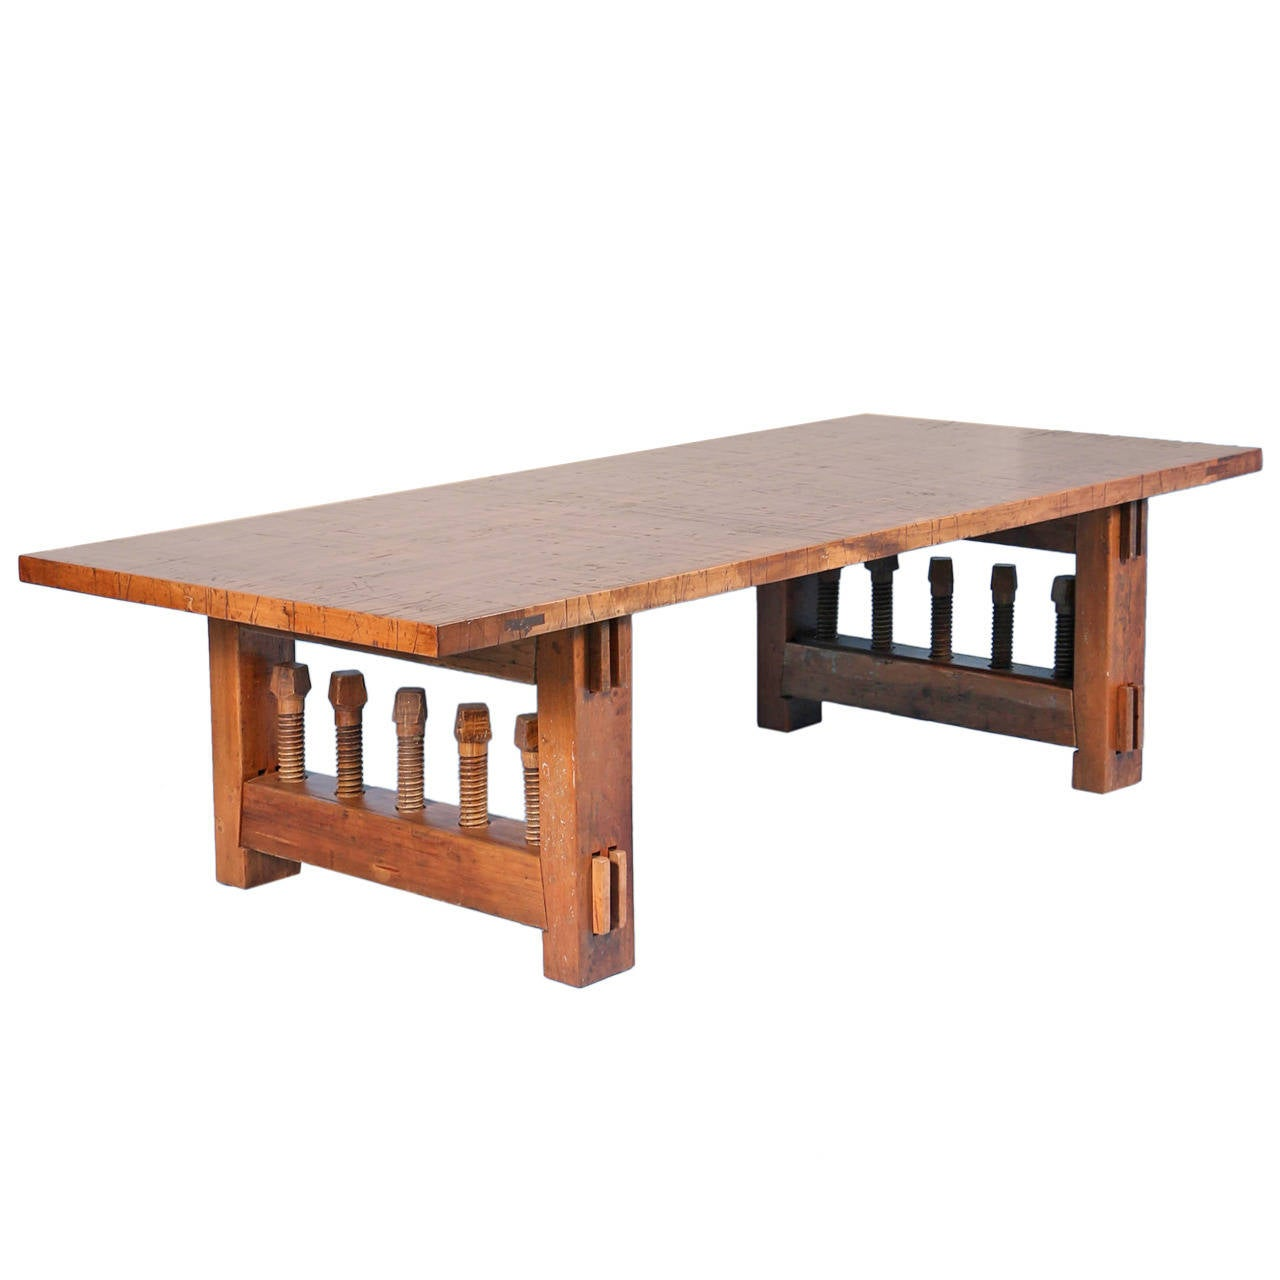 Architectural And Industrial 9 39 Dining Or Conference Table